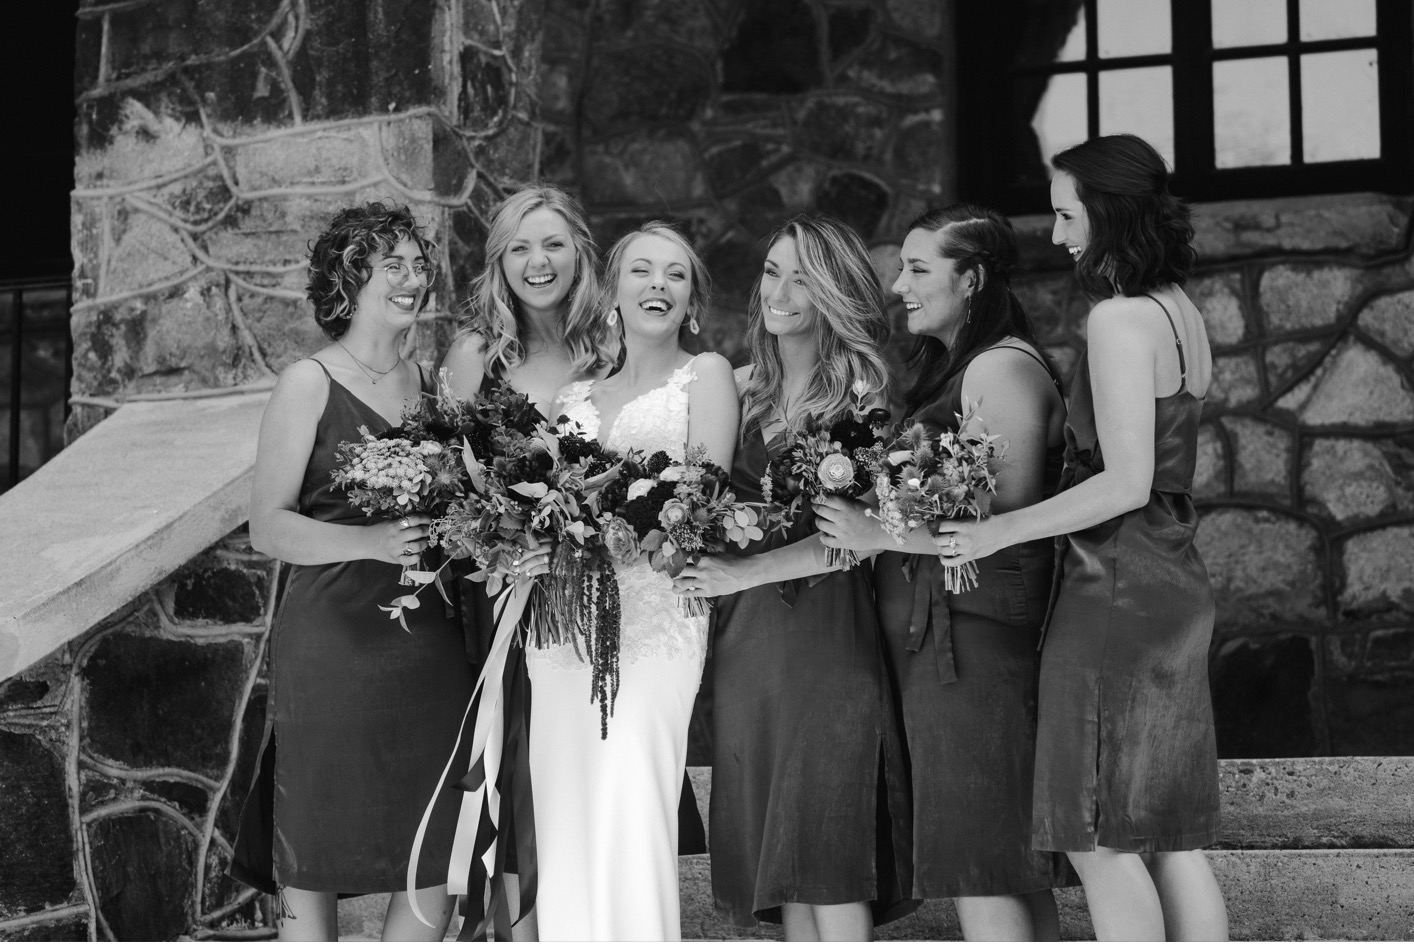 009_Photographers_Photography_Georgia_Weddings_Bridesmaids_Atlanta_Wedding.jpg